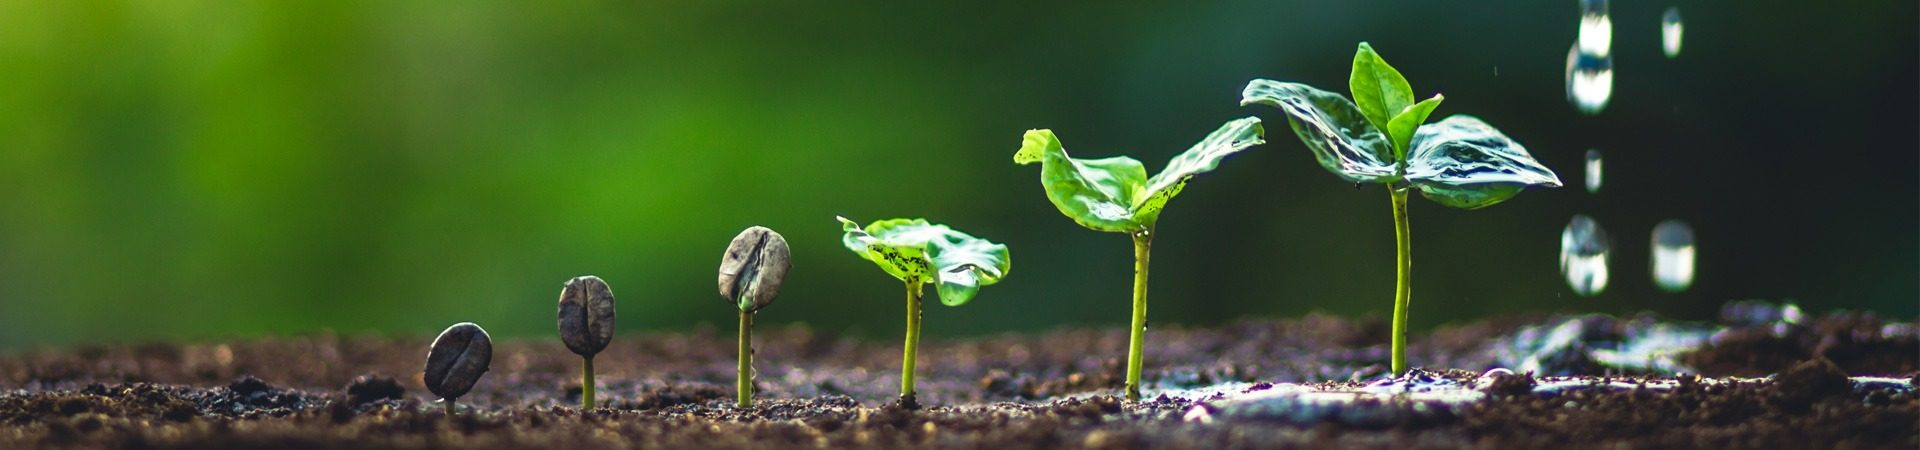 16July-2019-A-Seed-Is-Born